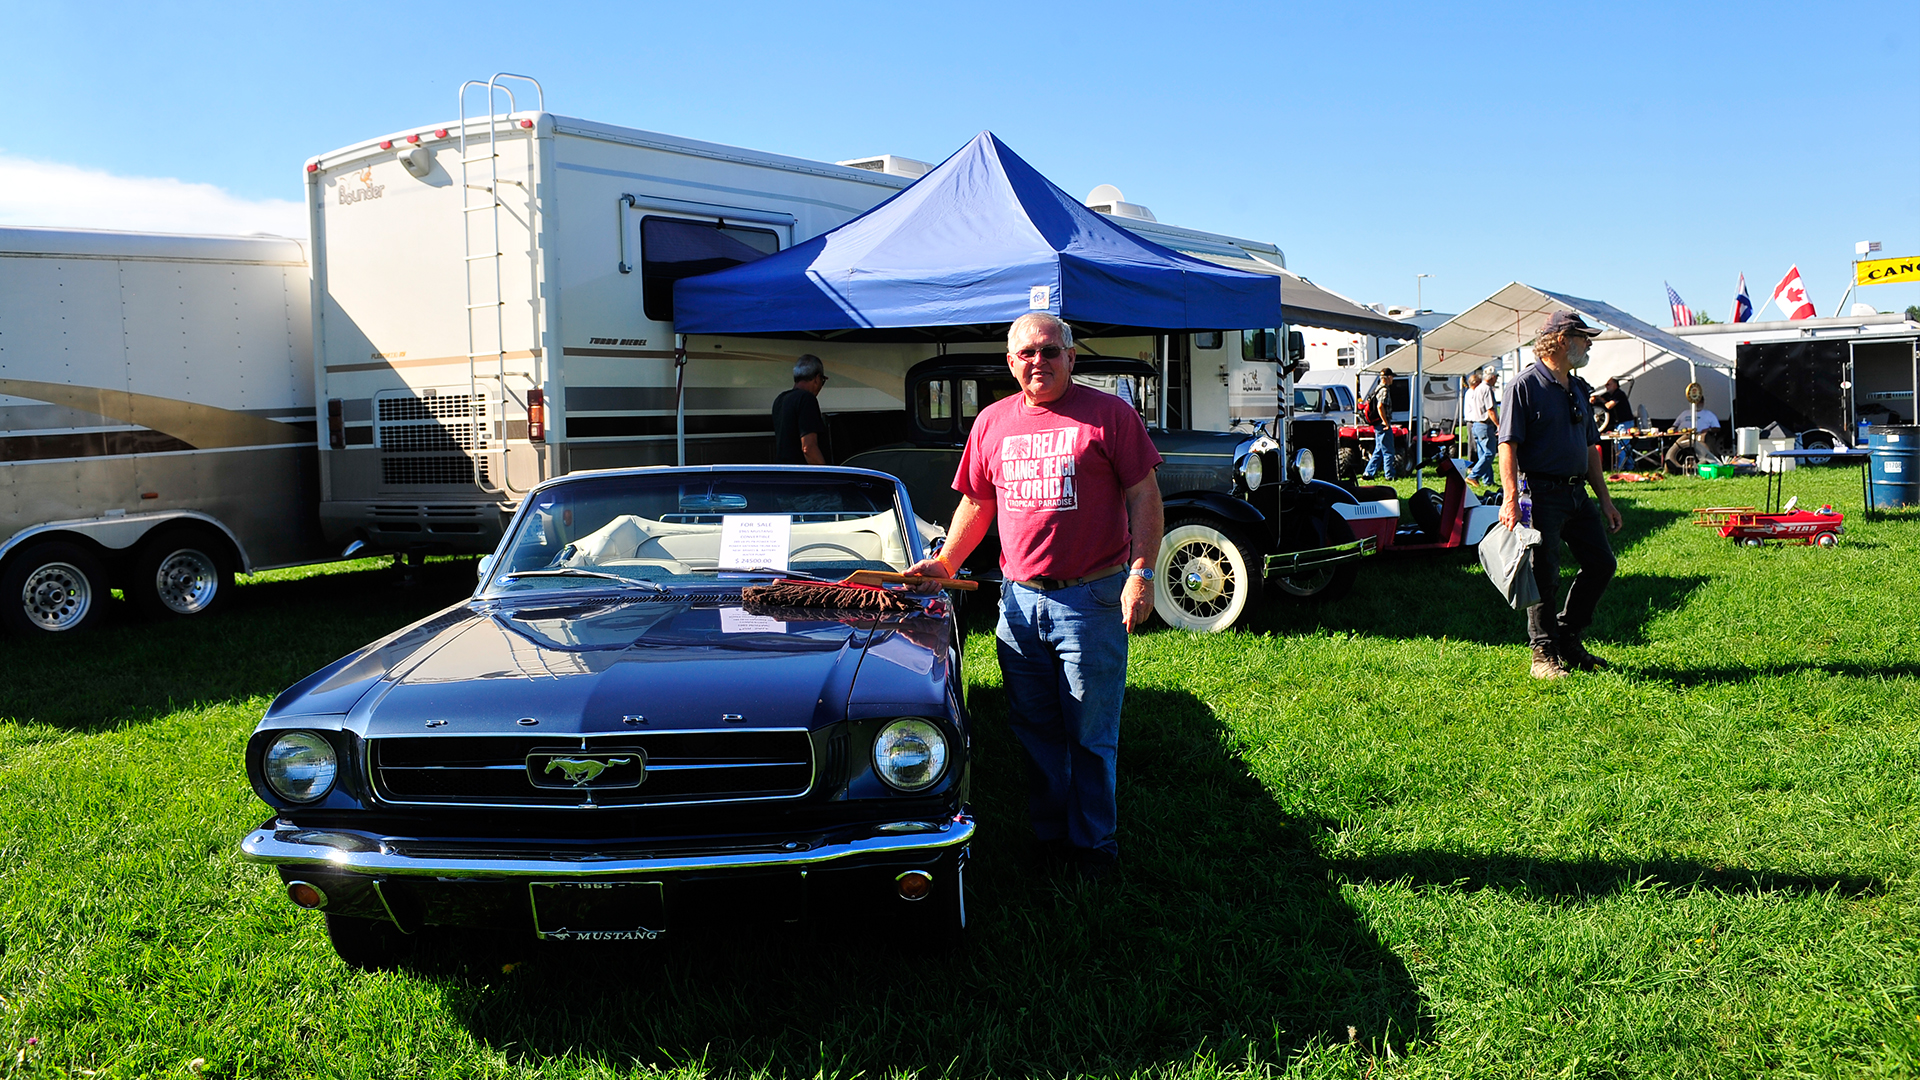 Automotive flea market - Events You Don't Want To Miss This June